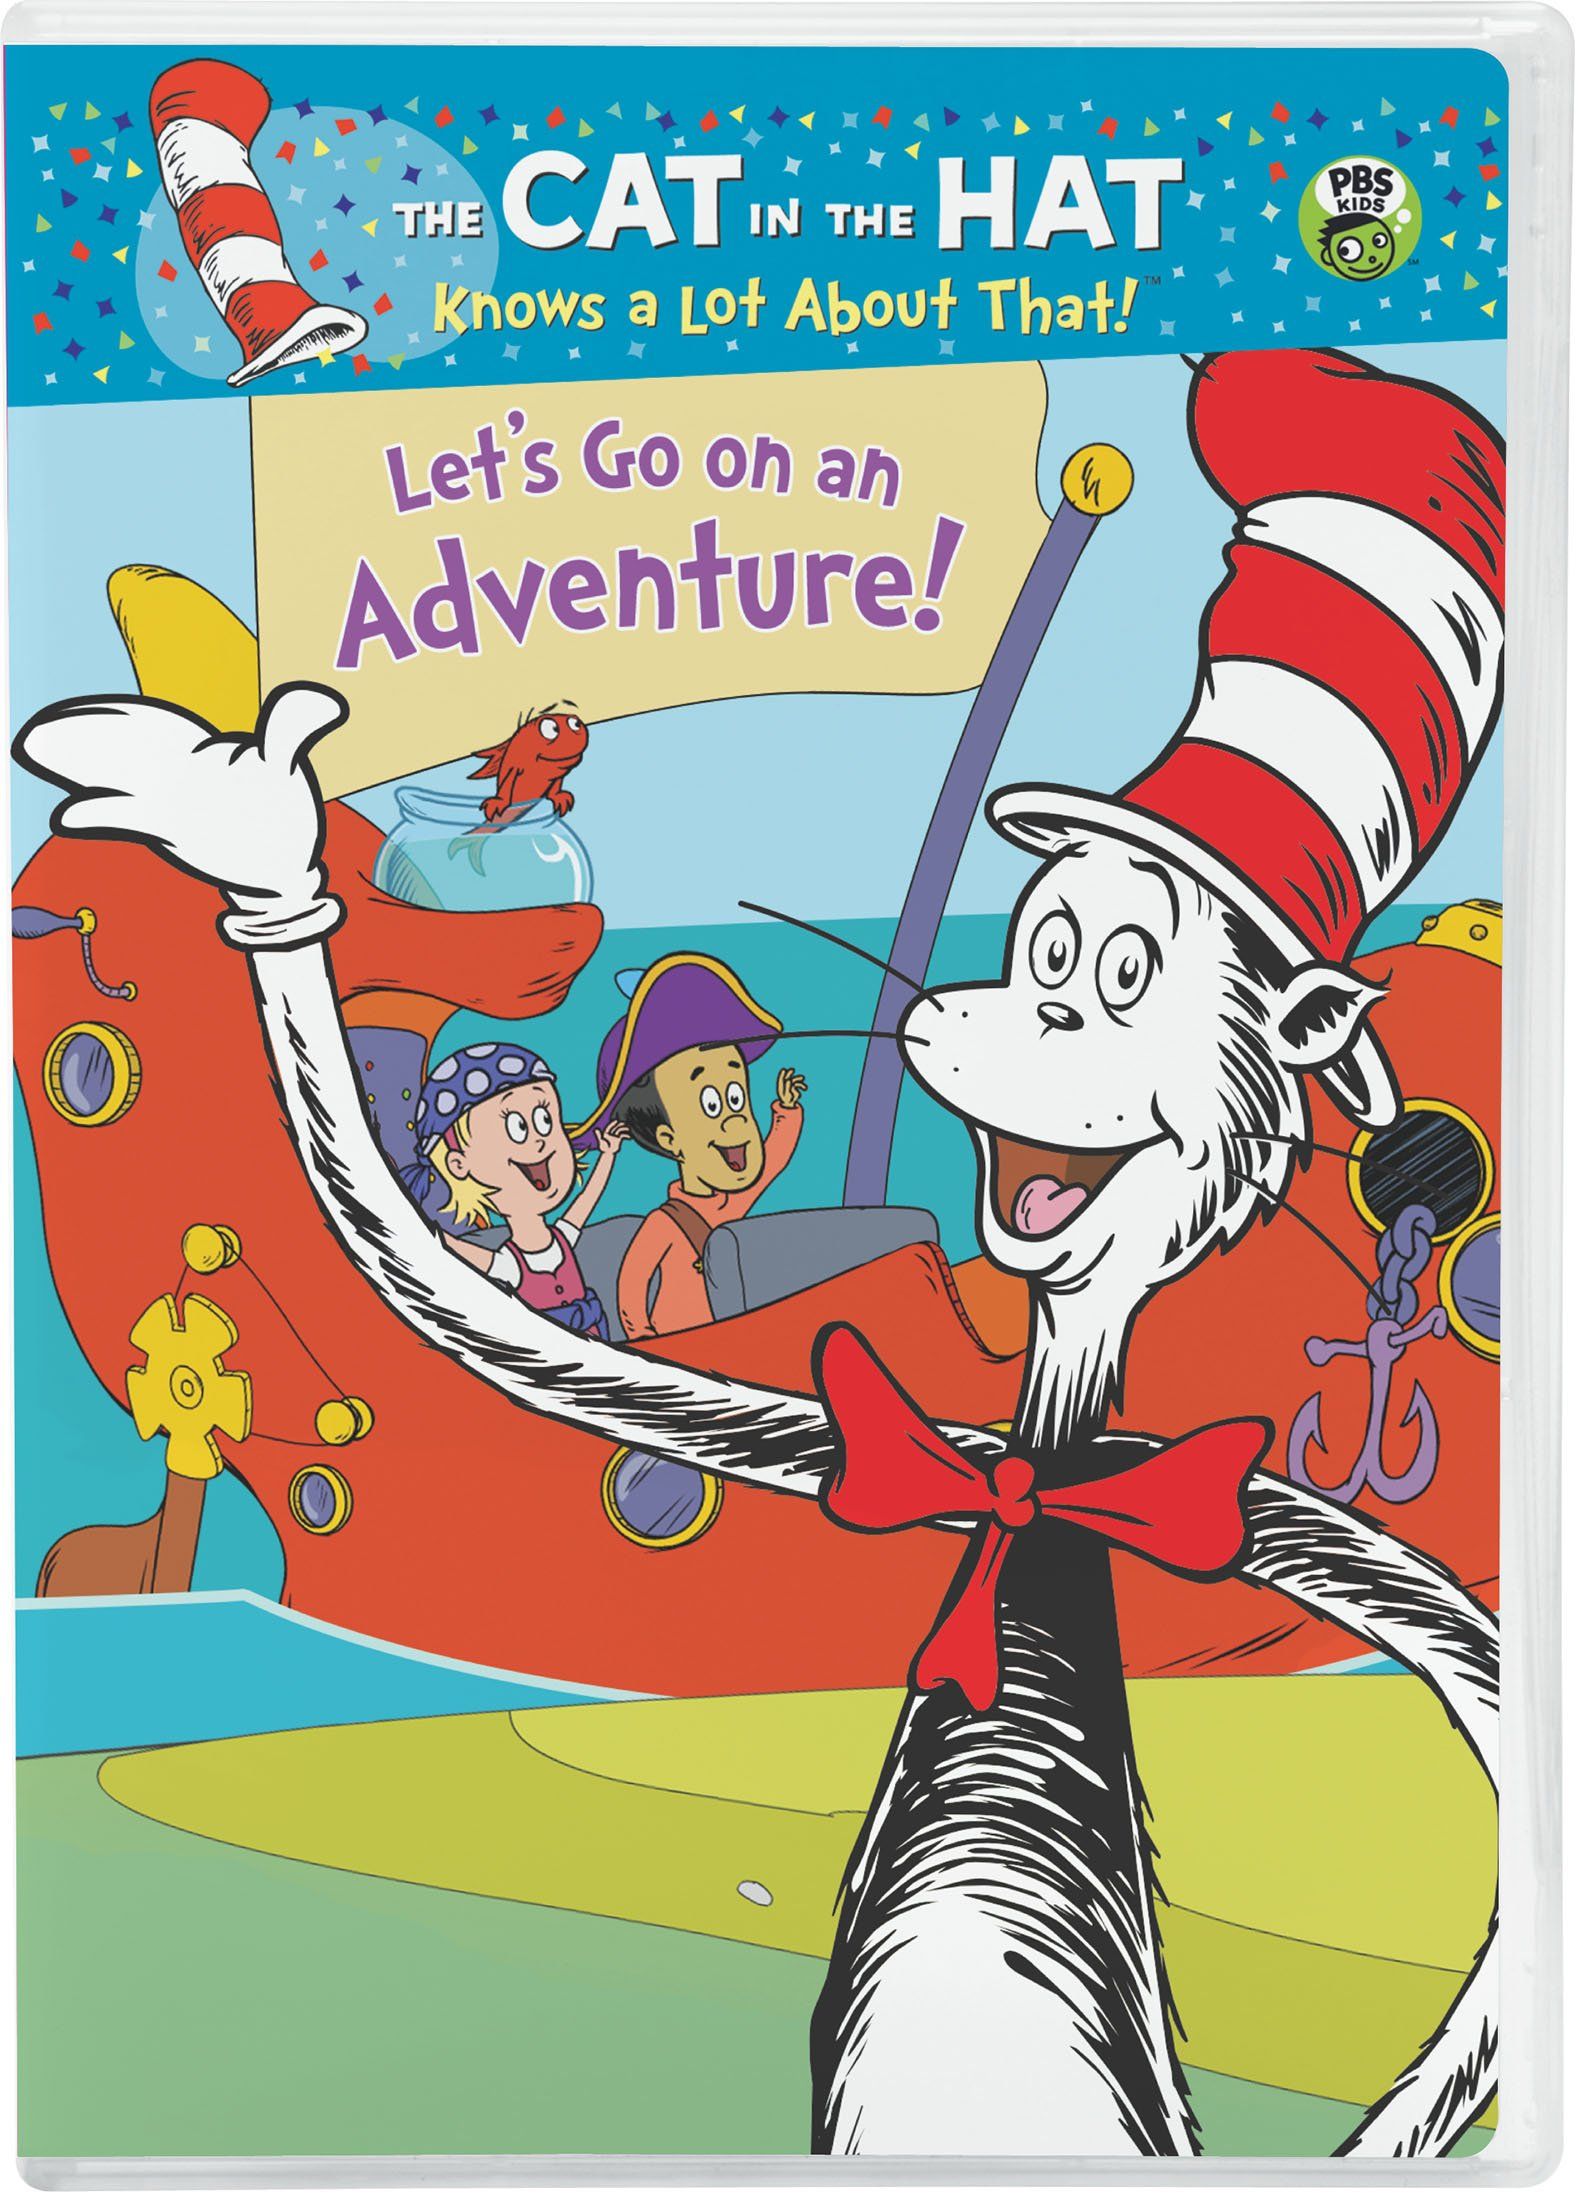 Cat in the Hat: Let's Go on an Adventure!